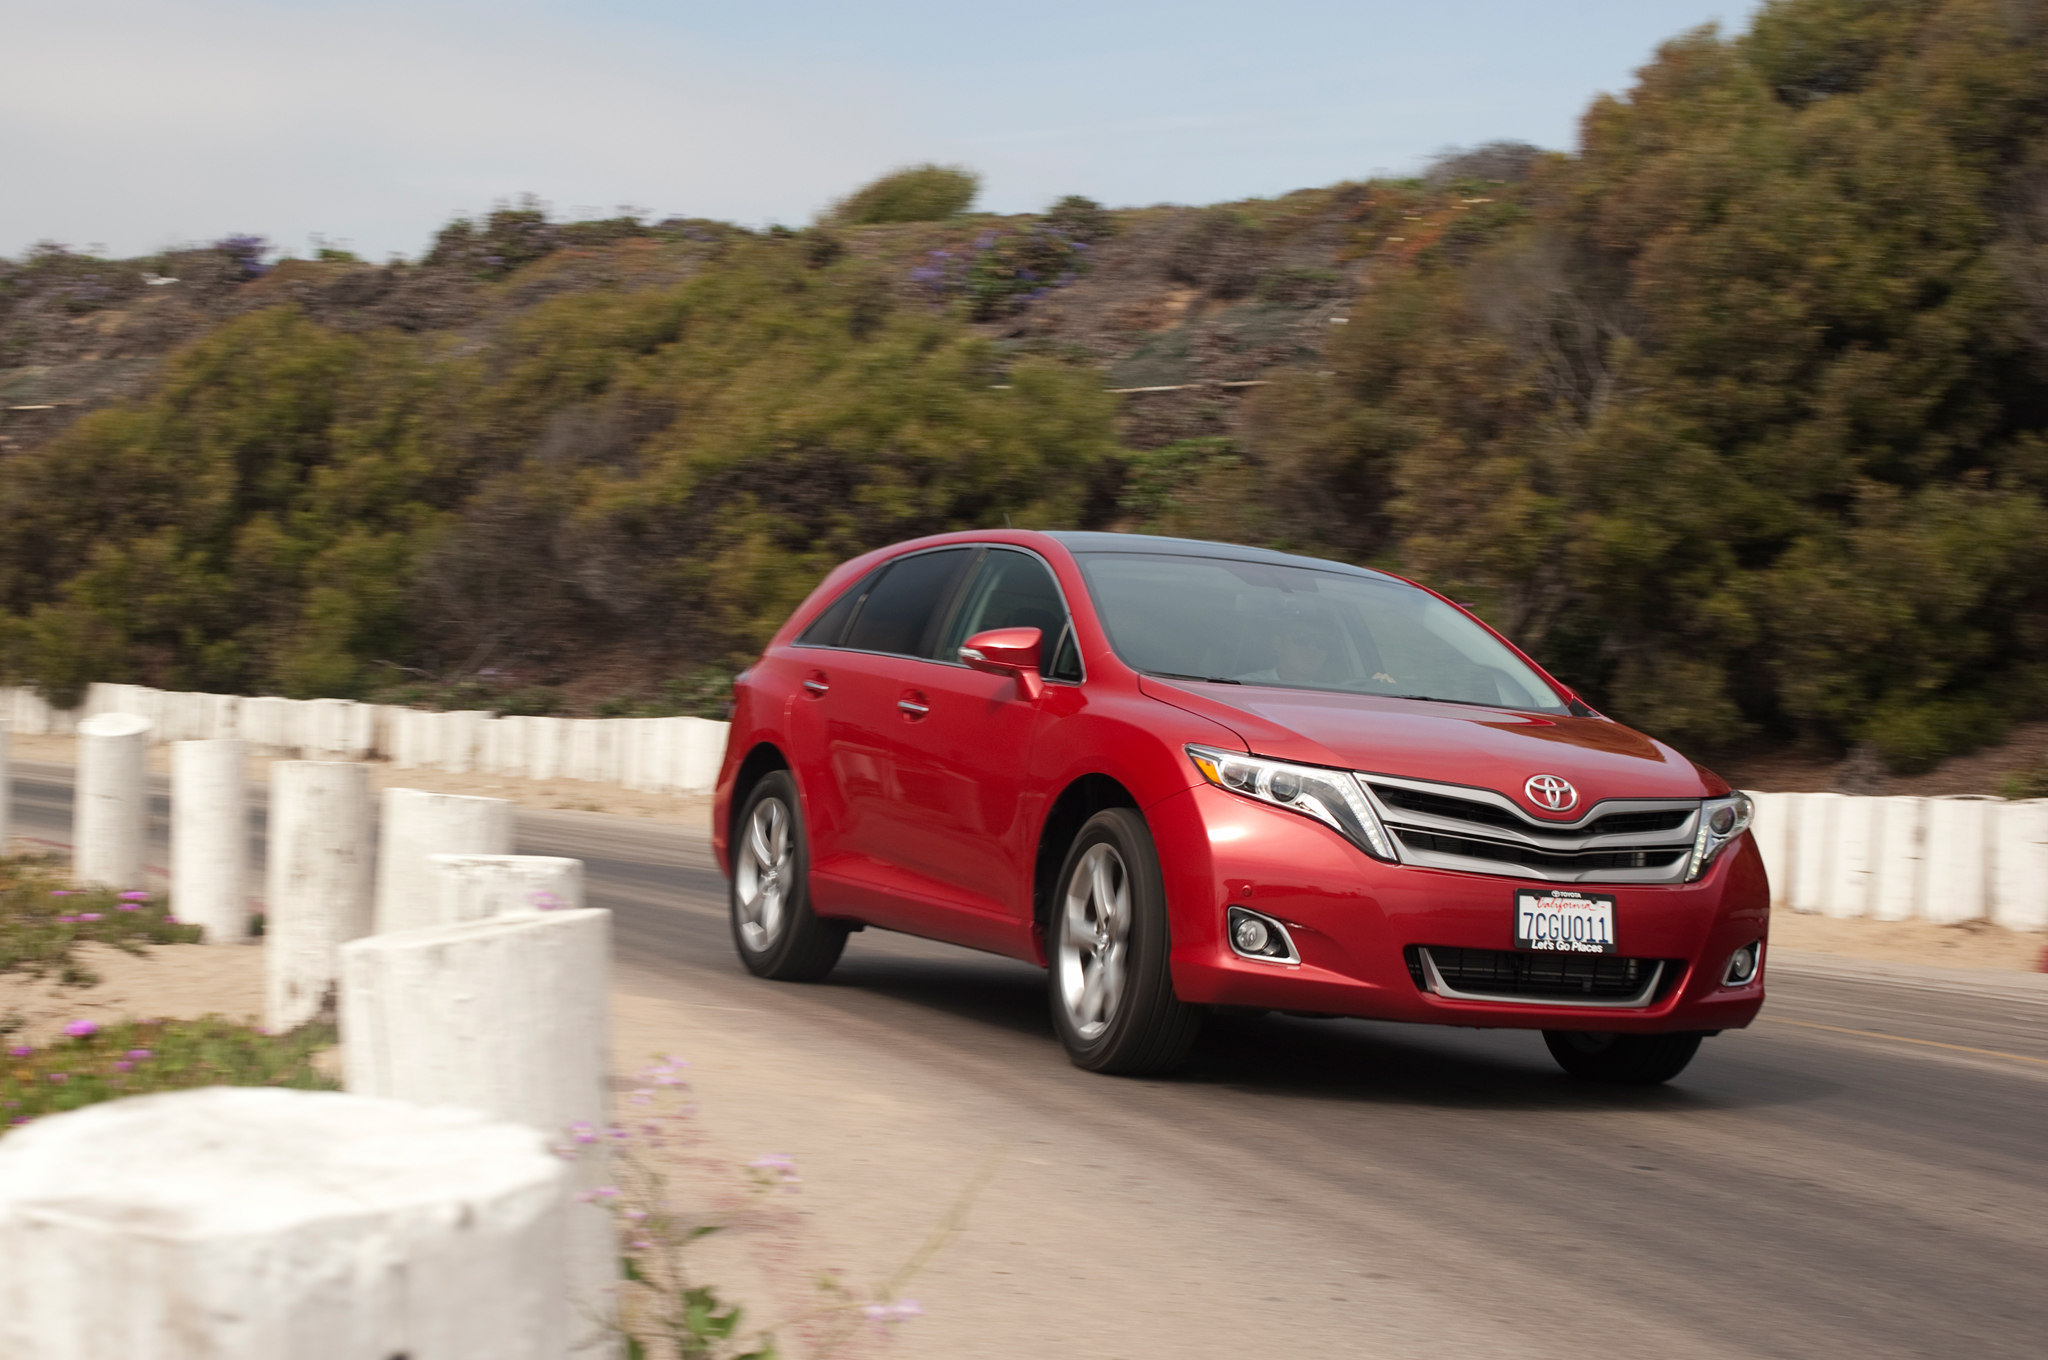 Toyota Venza Calling it Quits After 2015 Model Year Motor Trend